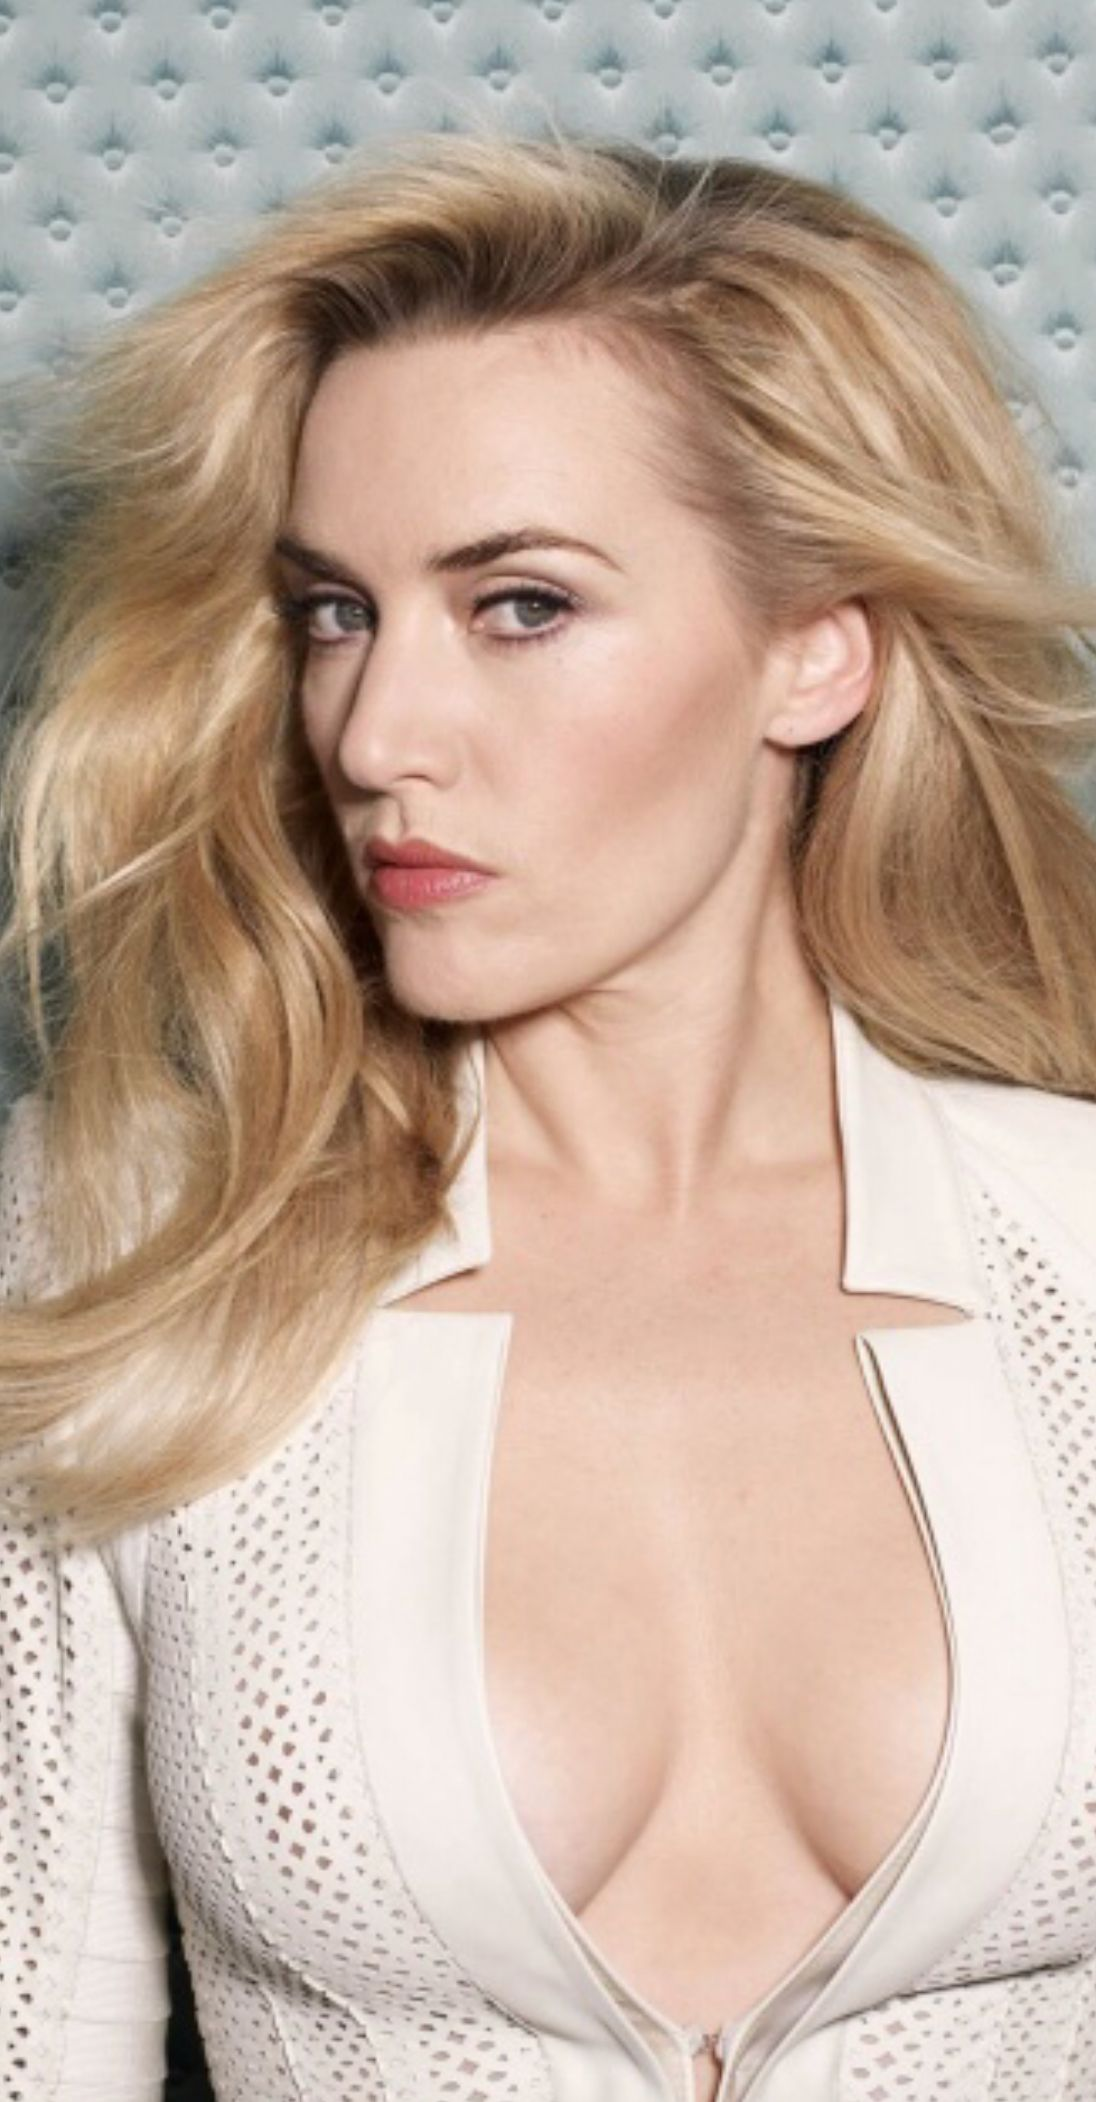 Kate Winslet Looking Magnificent | Kate winslet in 2019 ...